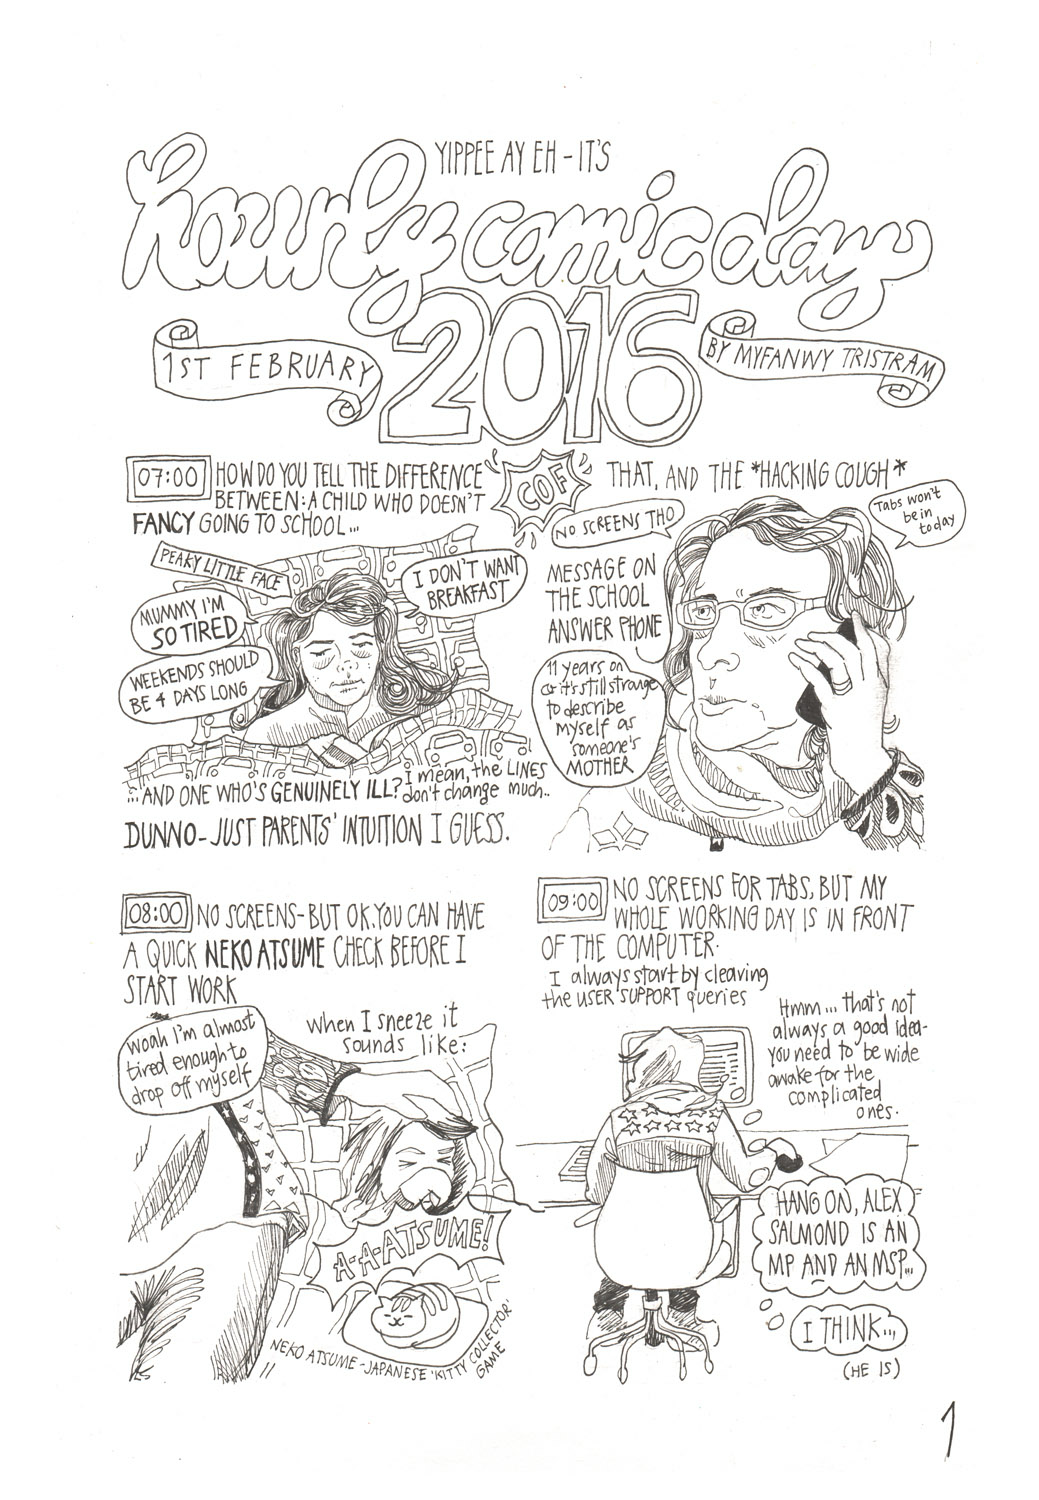 Hourly Comic Day 2016 by Myfanwy Tristram p1